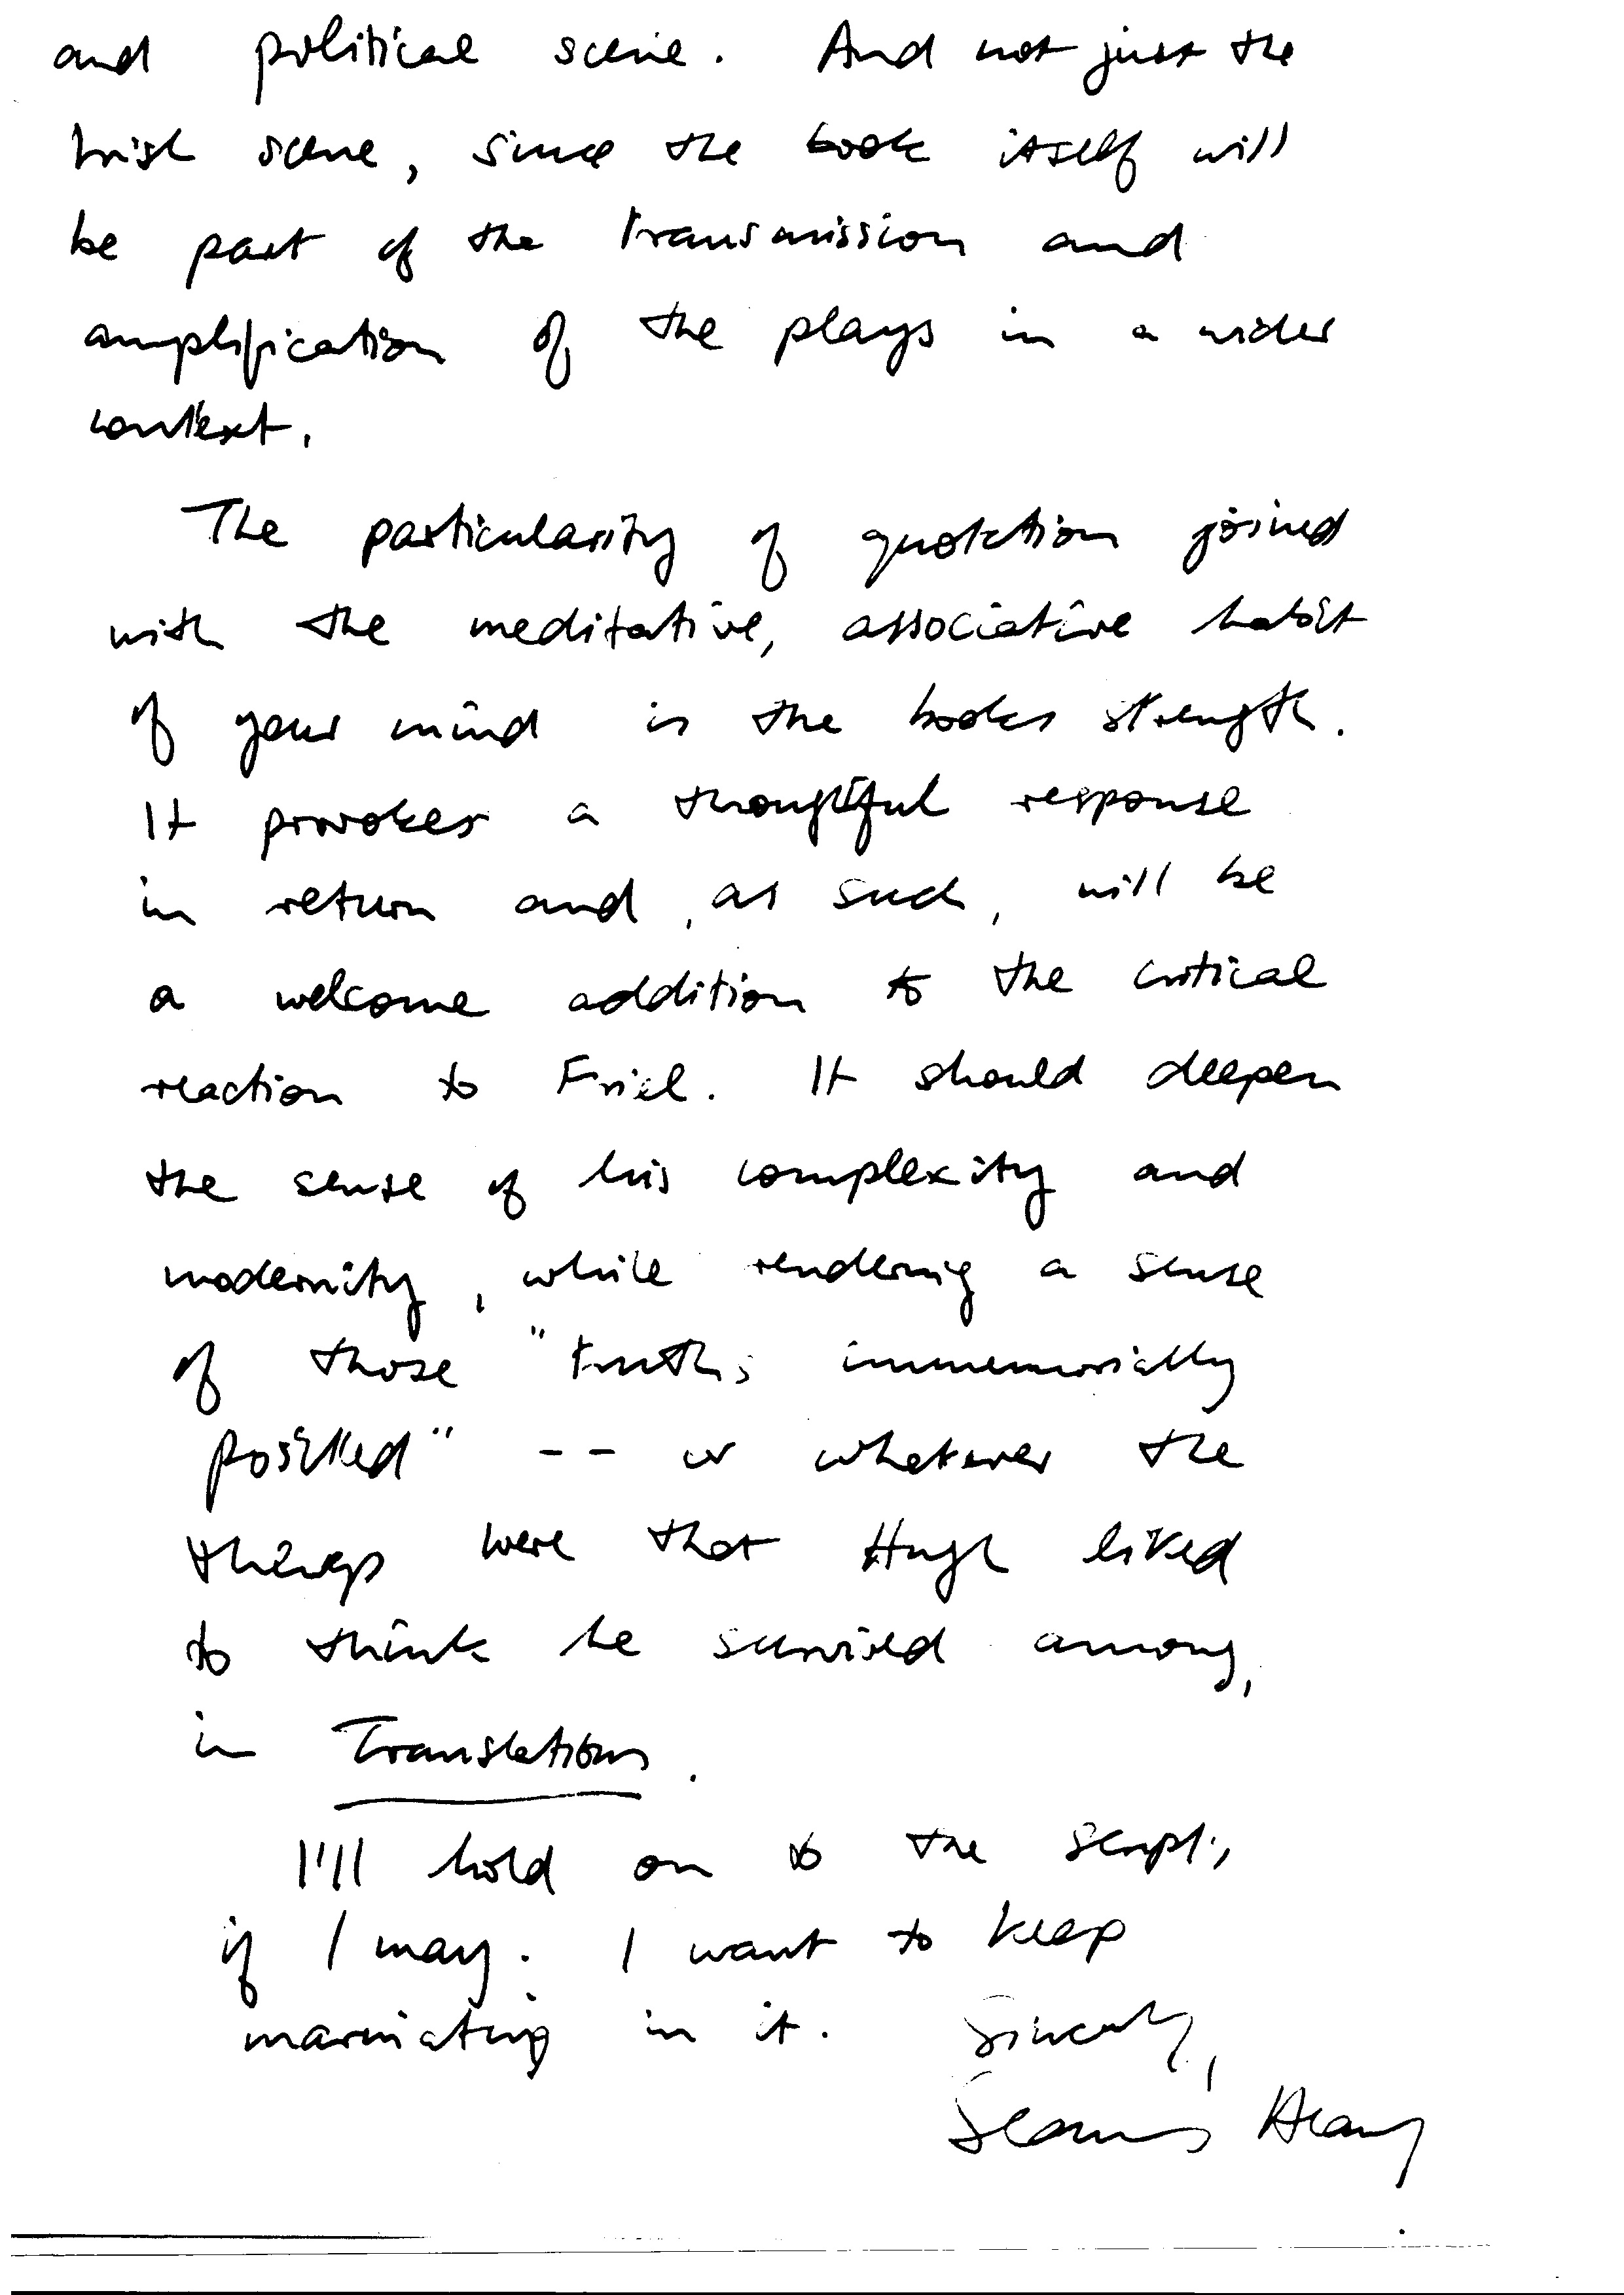 File:Handwritten_letter_from_Seamus_Heaney_to_Richard_Pine,_page_2 on Nelson Handwriting